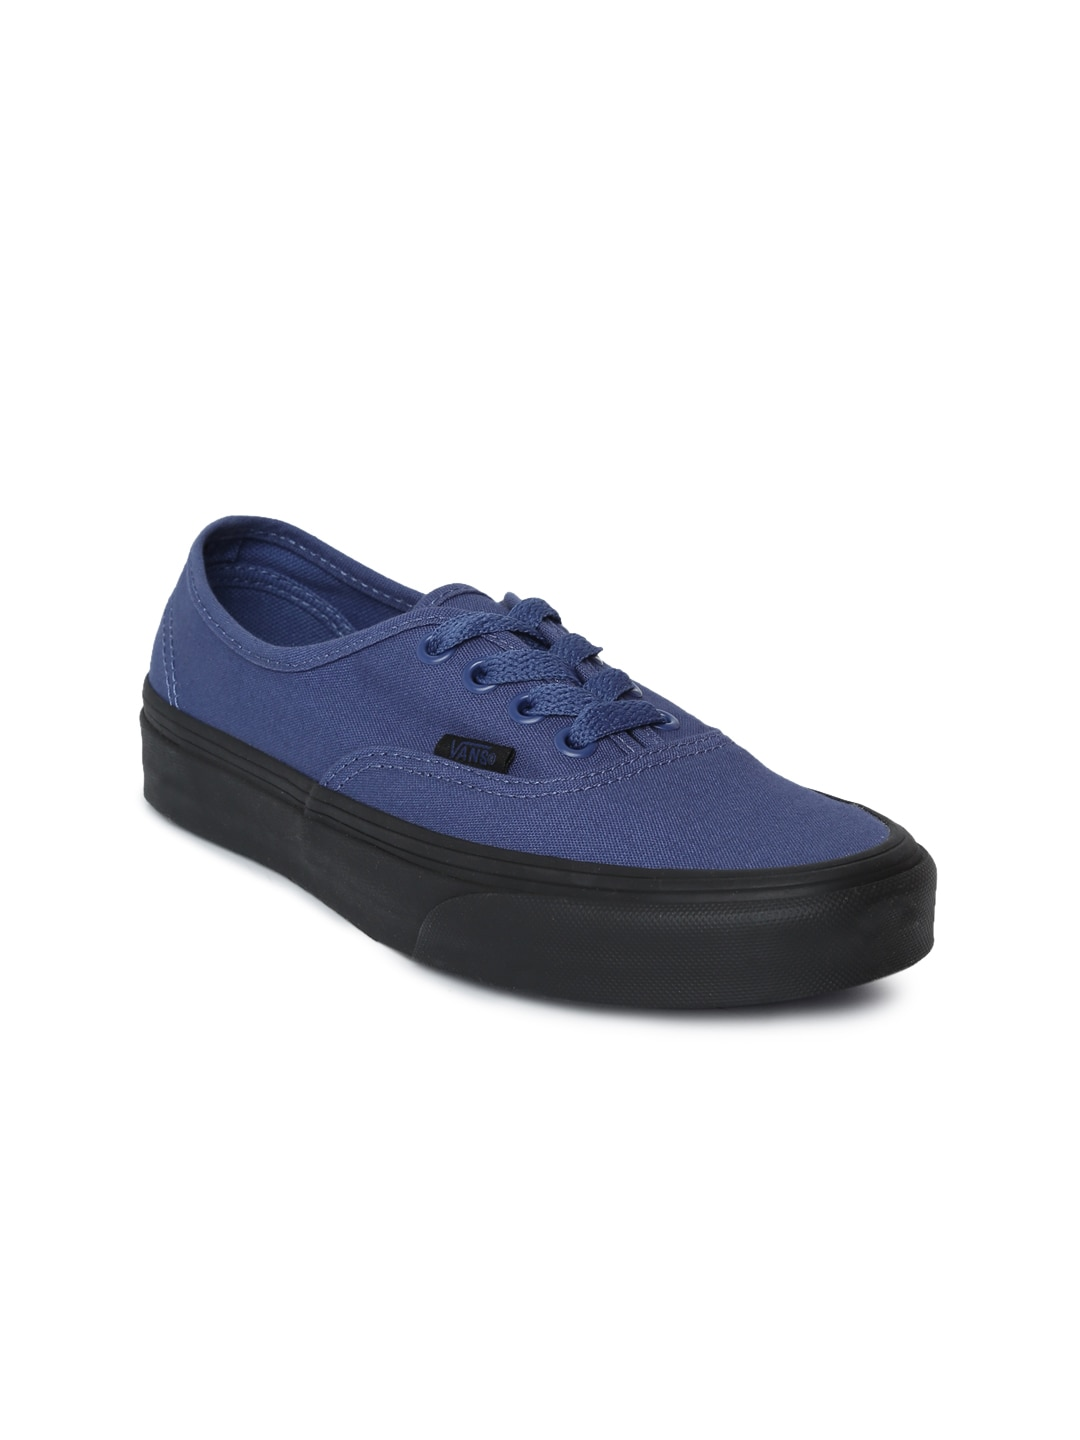 db8b8b544f Vans Shoes for Women - Buy Vans Shoes for Girls Online - Myntra